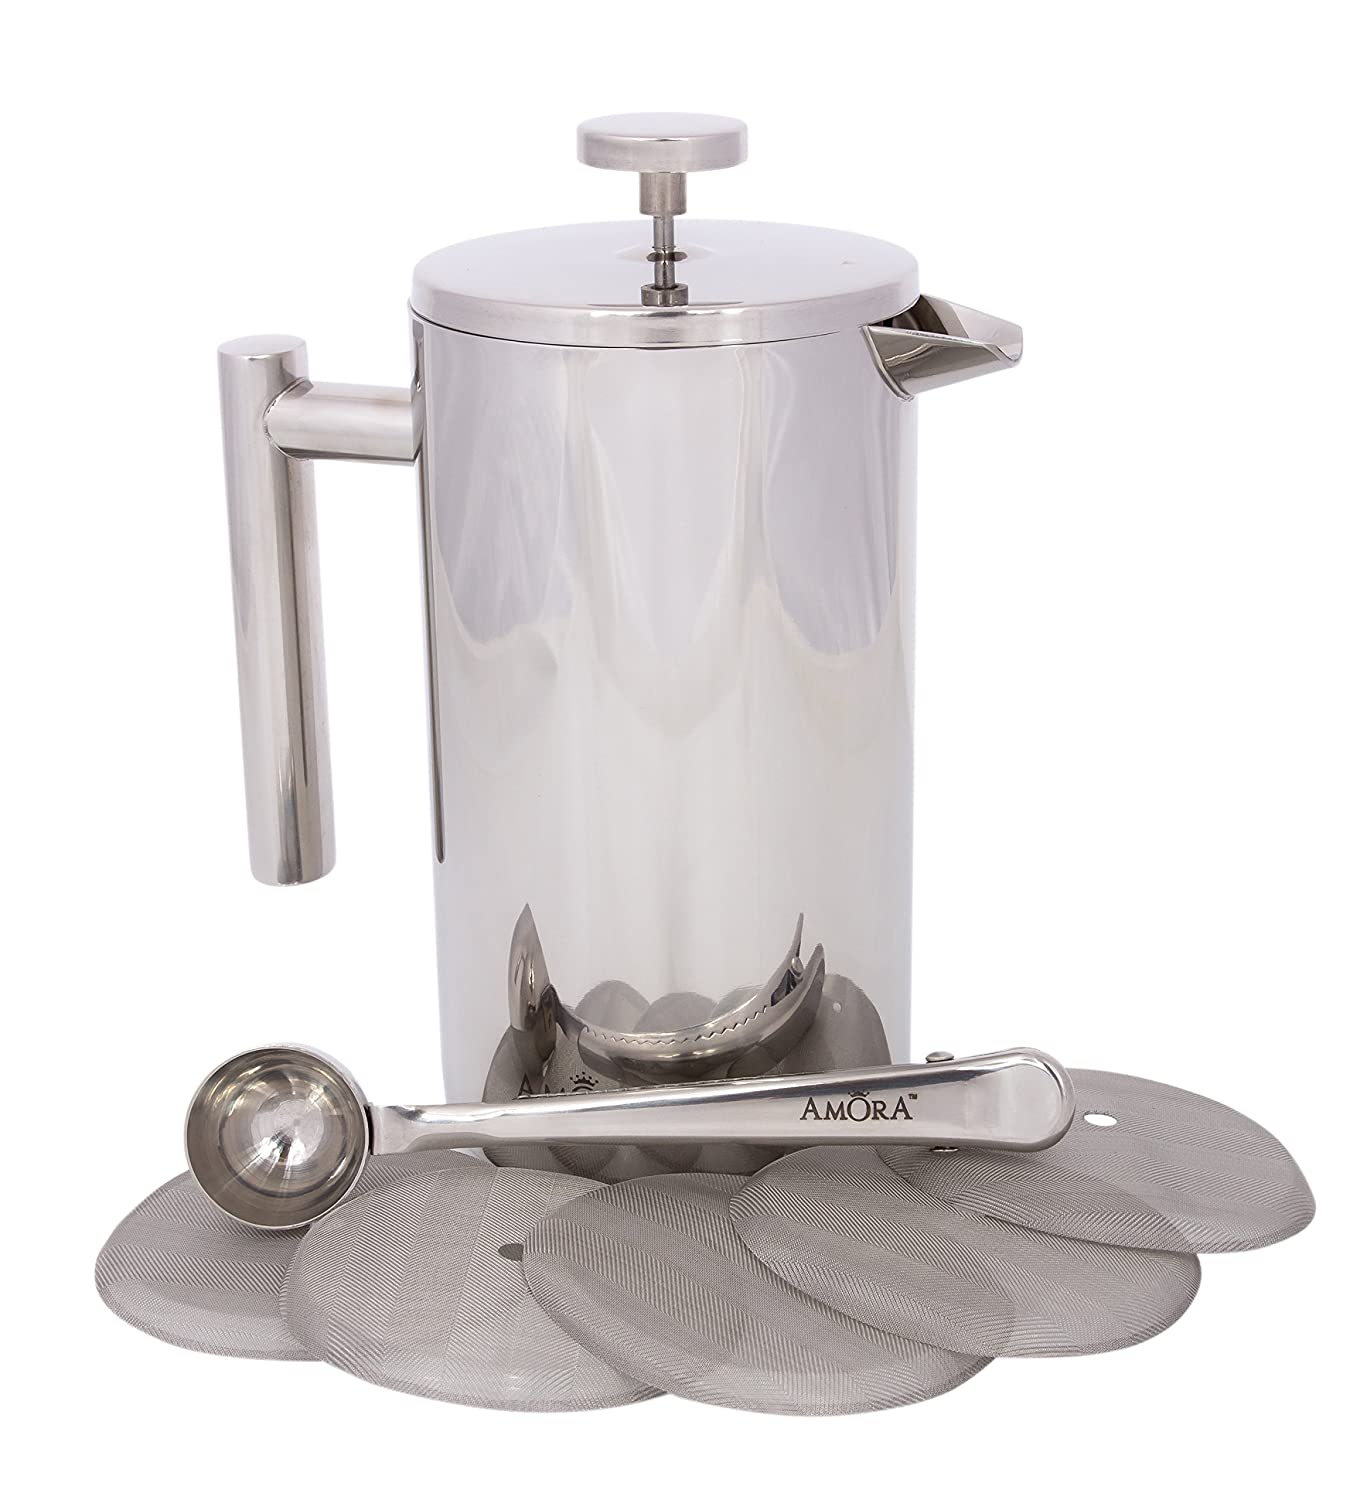 Amora 8-cup Stainless Steel French Press Coffee Maker - FREE Coffee Spoon & 5 Mesh Filters COMINHKPR128895